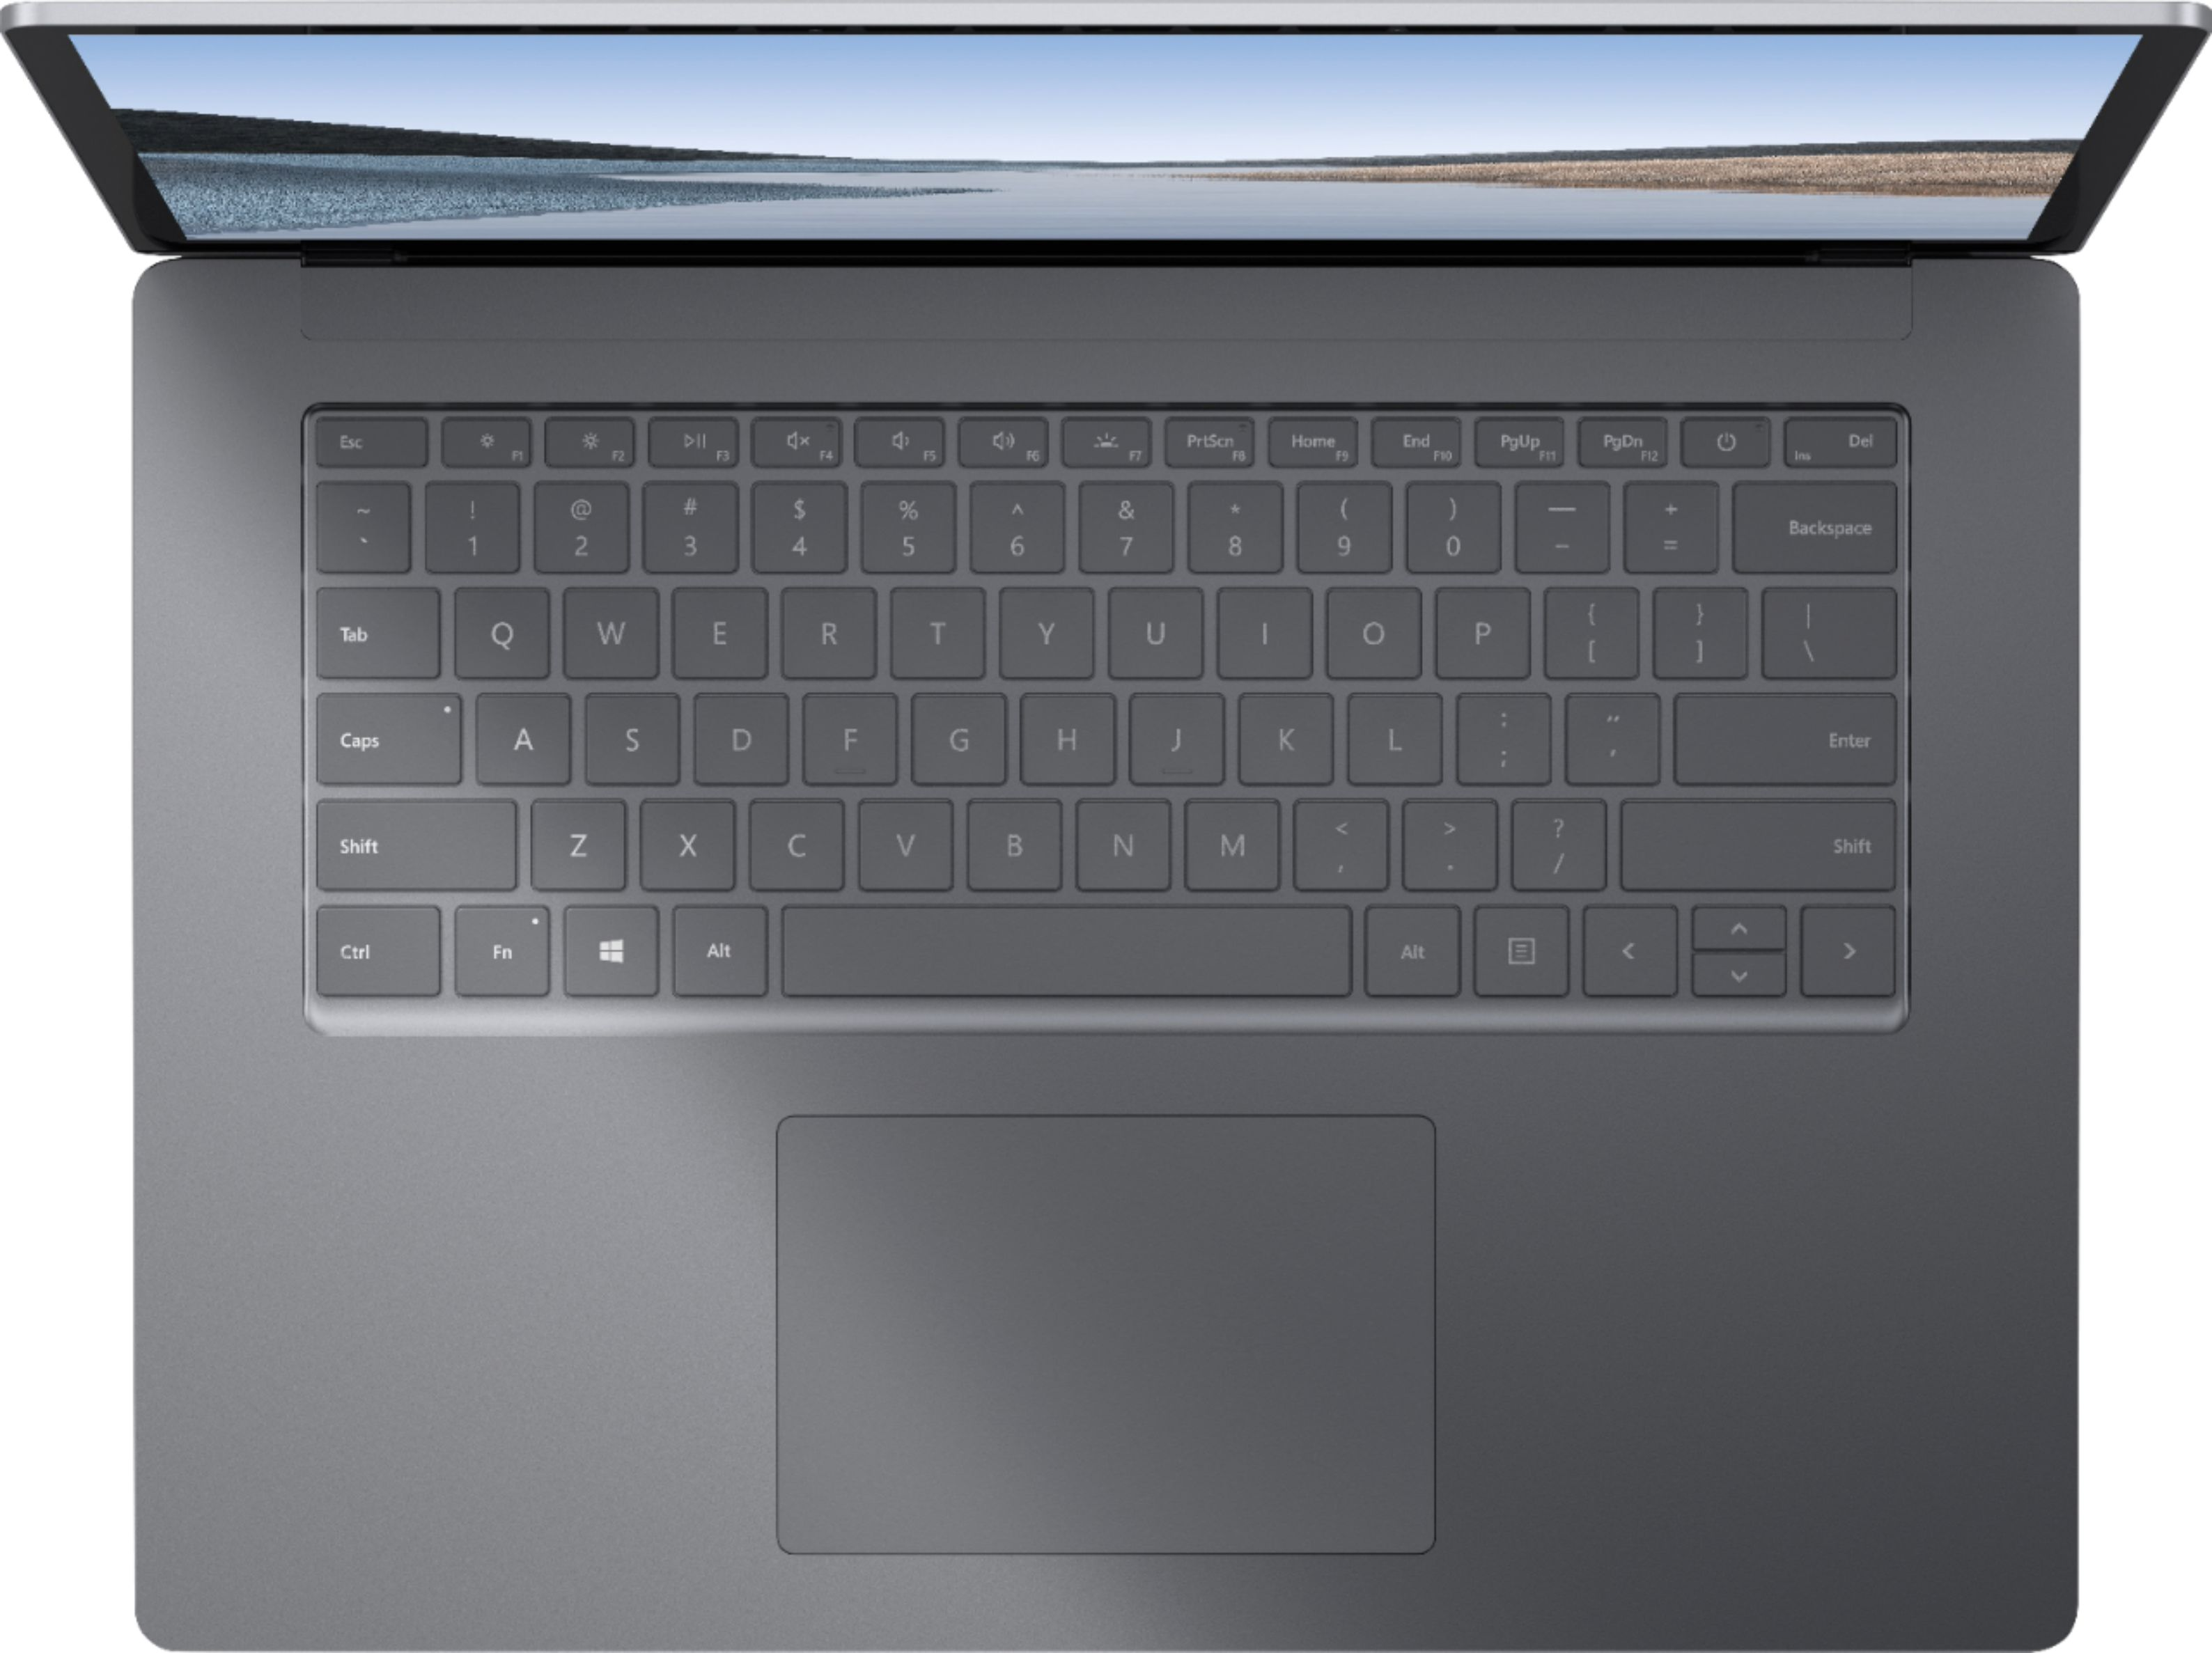 """Alt View Zoom 12. Microsoft - Surface Laptop 3 - 15"""" Touch-Screen - AMD Ryzen™ 5 Surface Edition - 16GB Memory - 256GB SSD (Latest Model) - Platinum."""